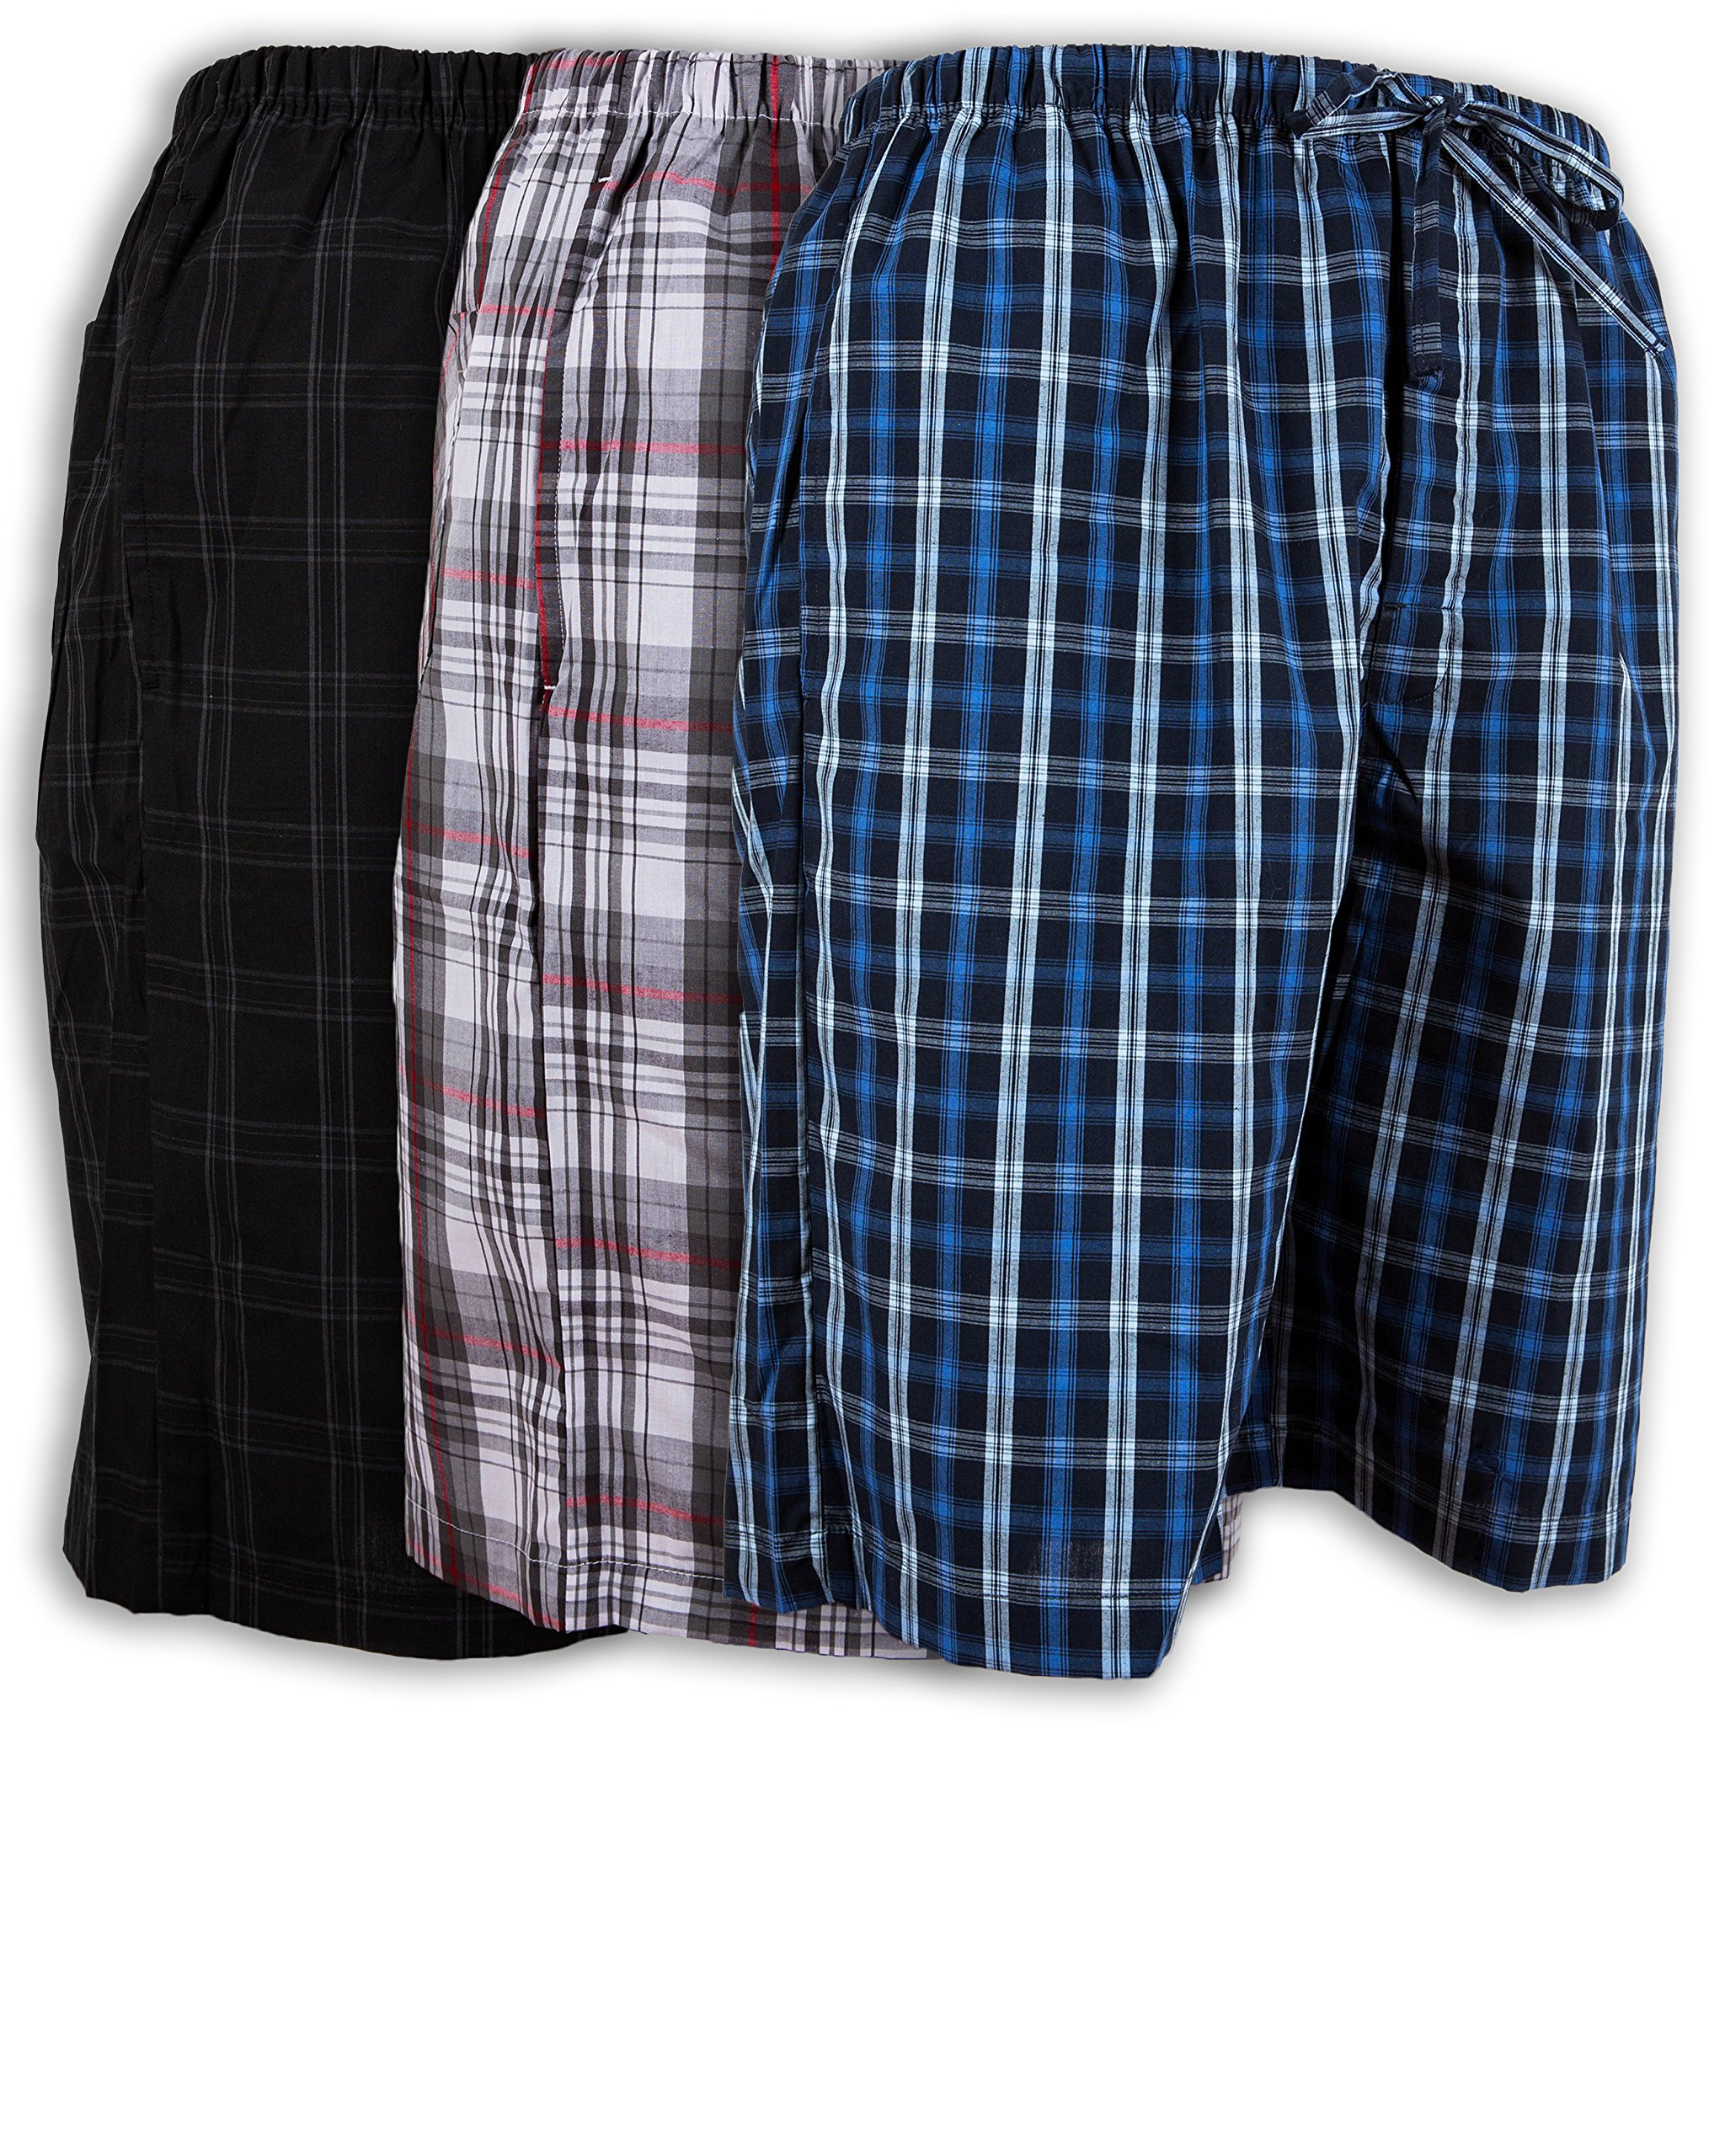 Men's 3 Pack Super Soft Woven Pajama & Sleep Jam Cargo Short Lounge Pants (Large, 3 Pack - Assorted Brilliant Plaids)